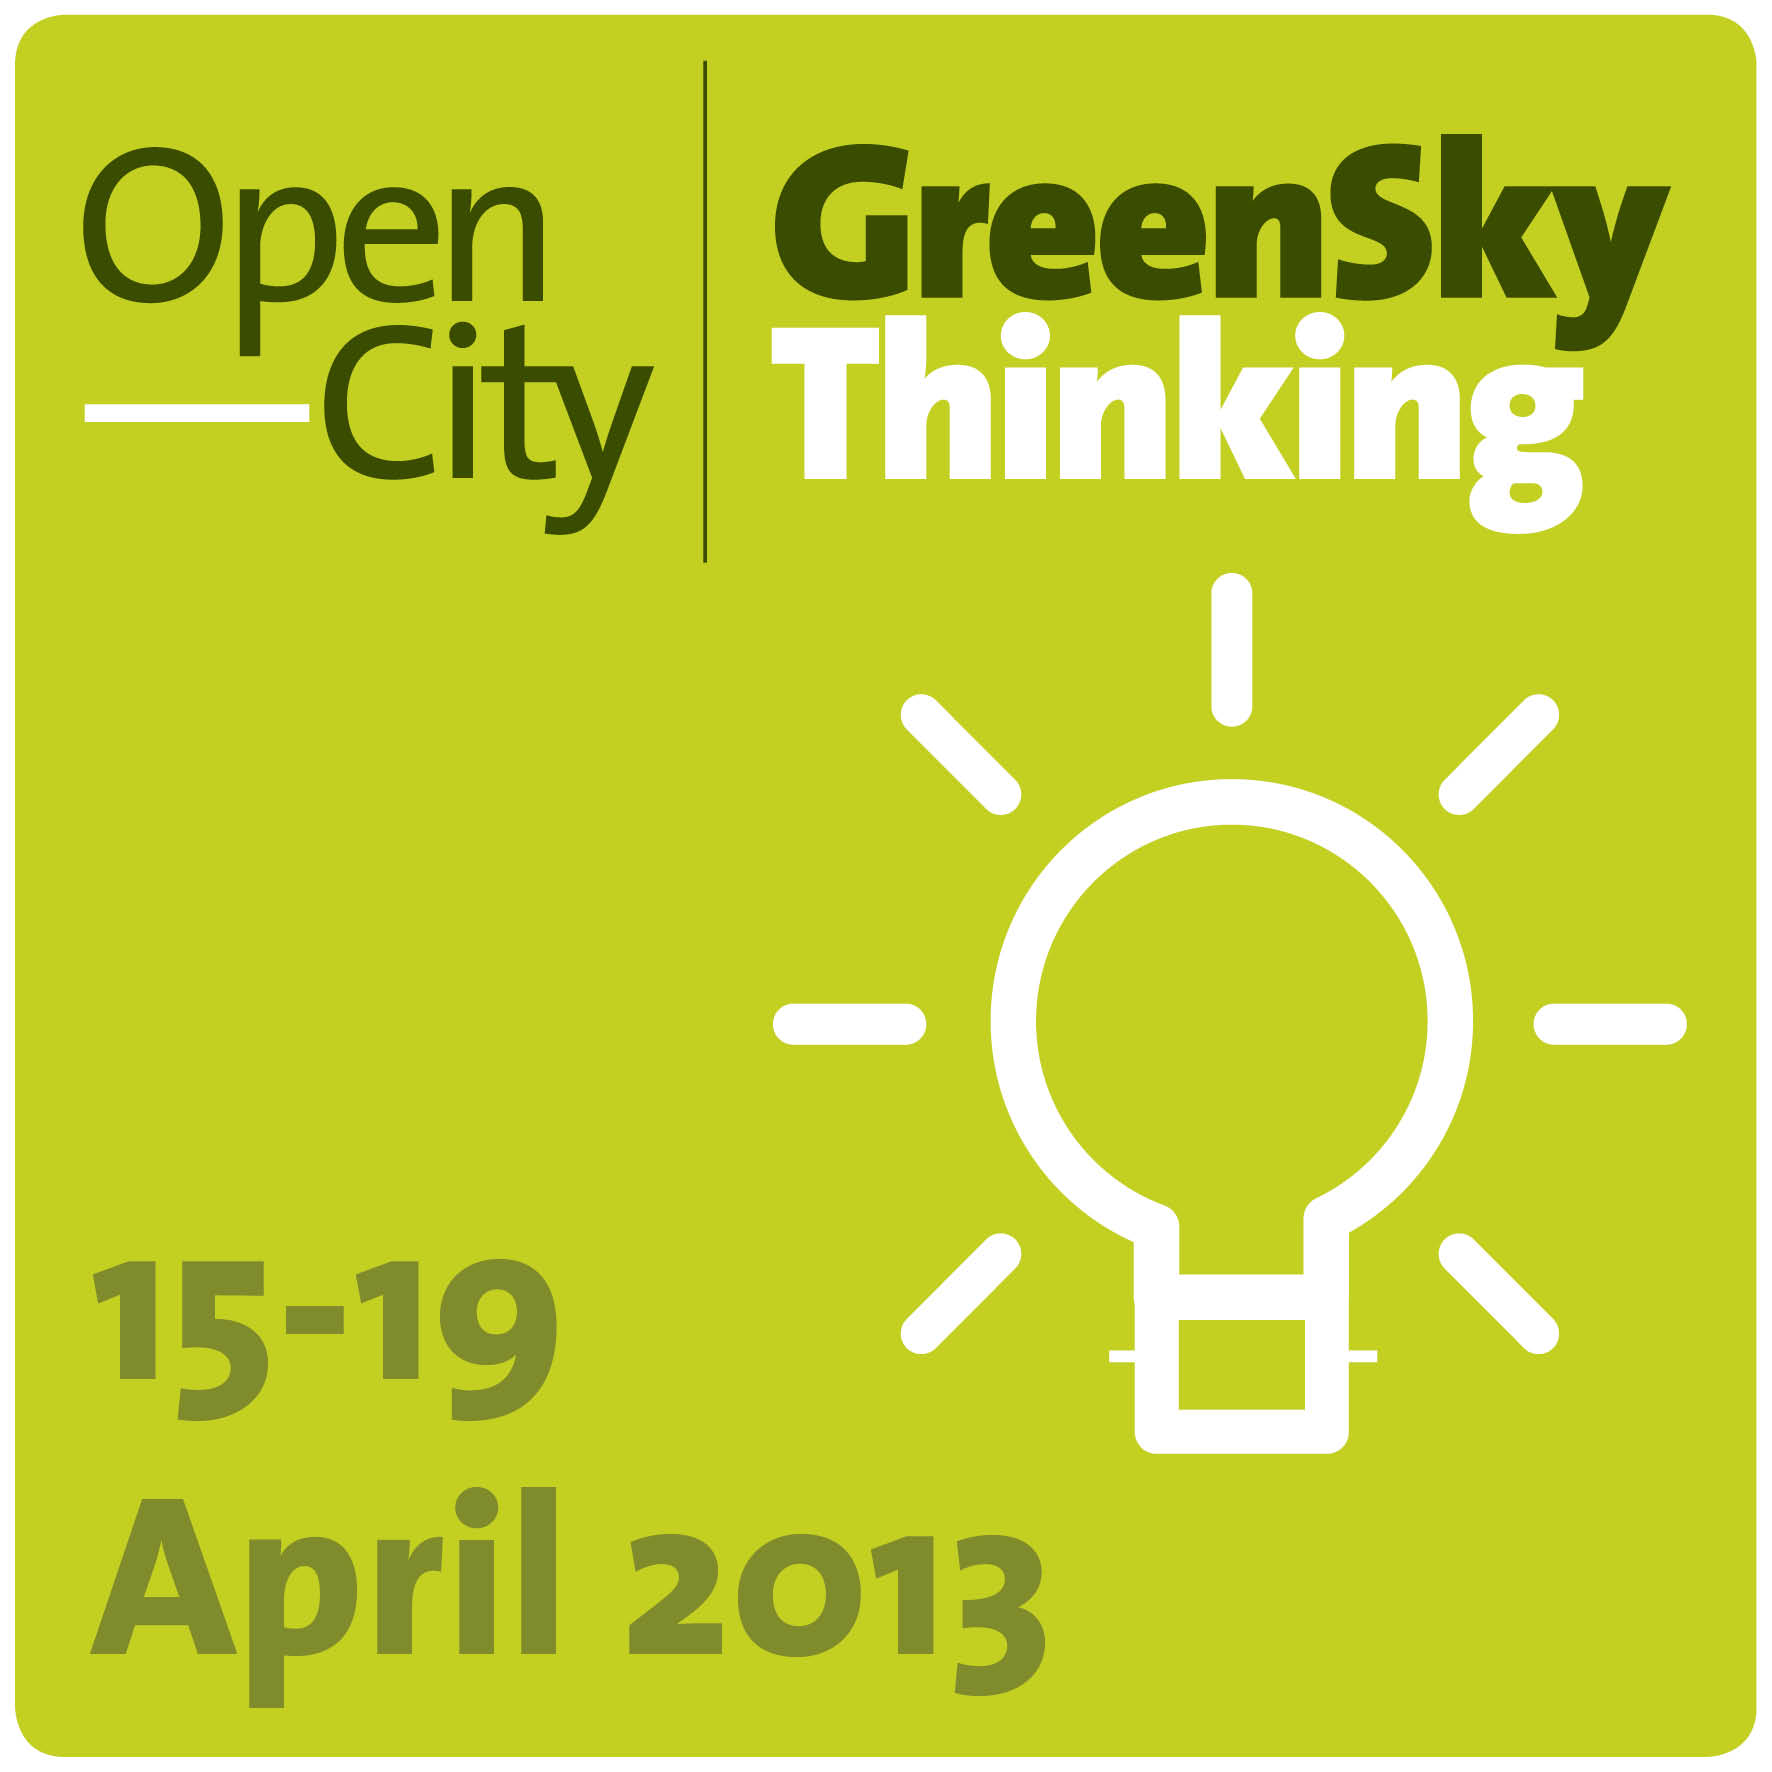 Trust to participate in Green Sky Thinking Week 15-19 April